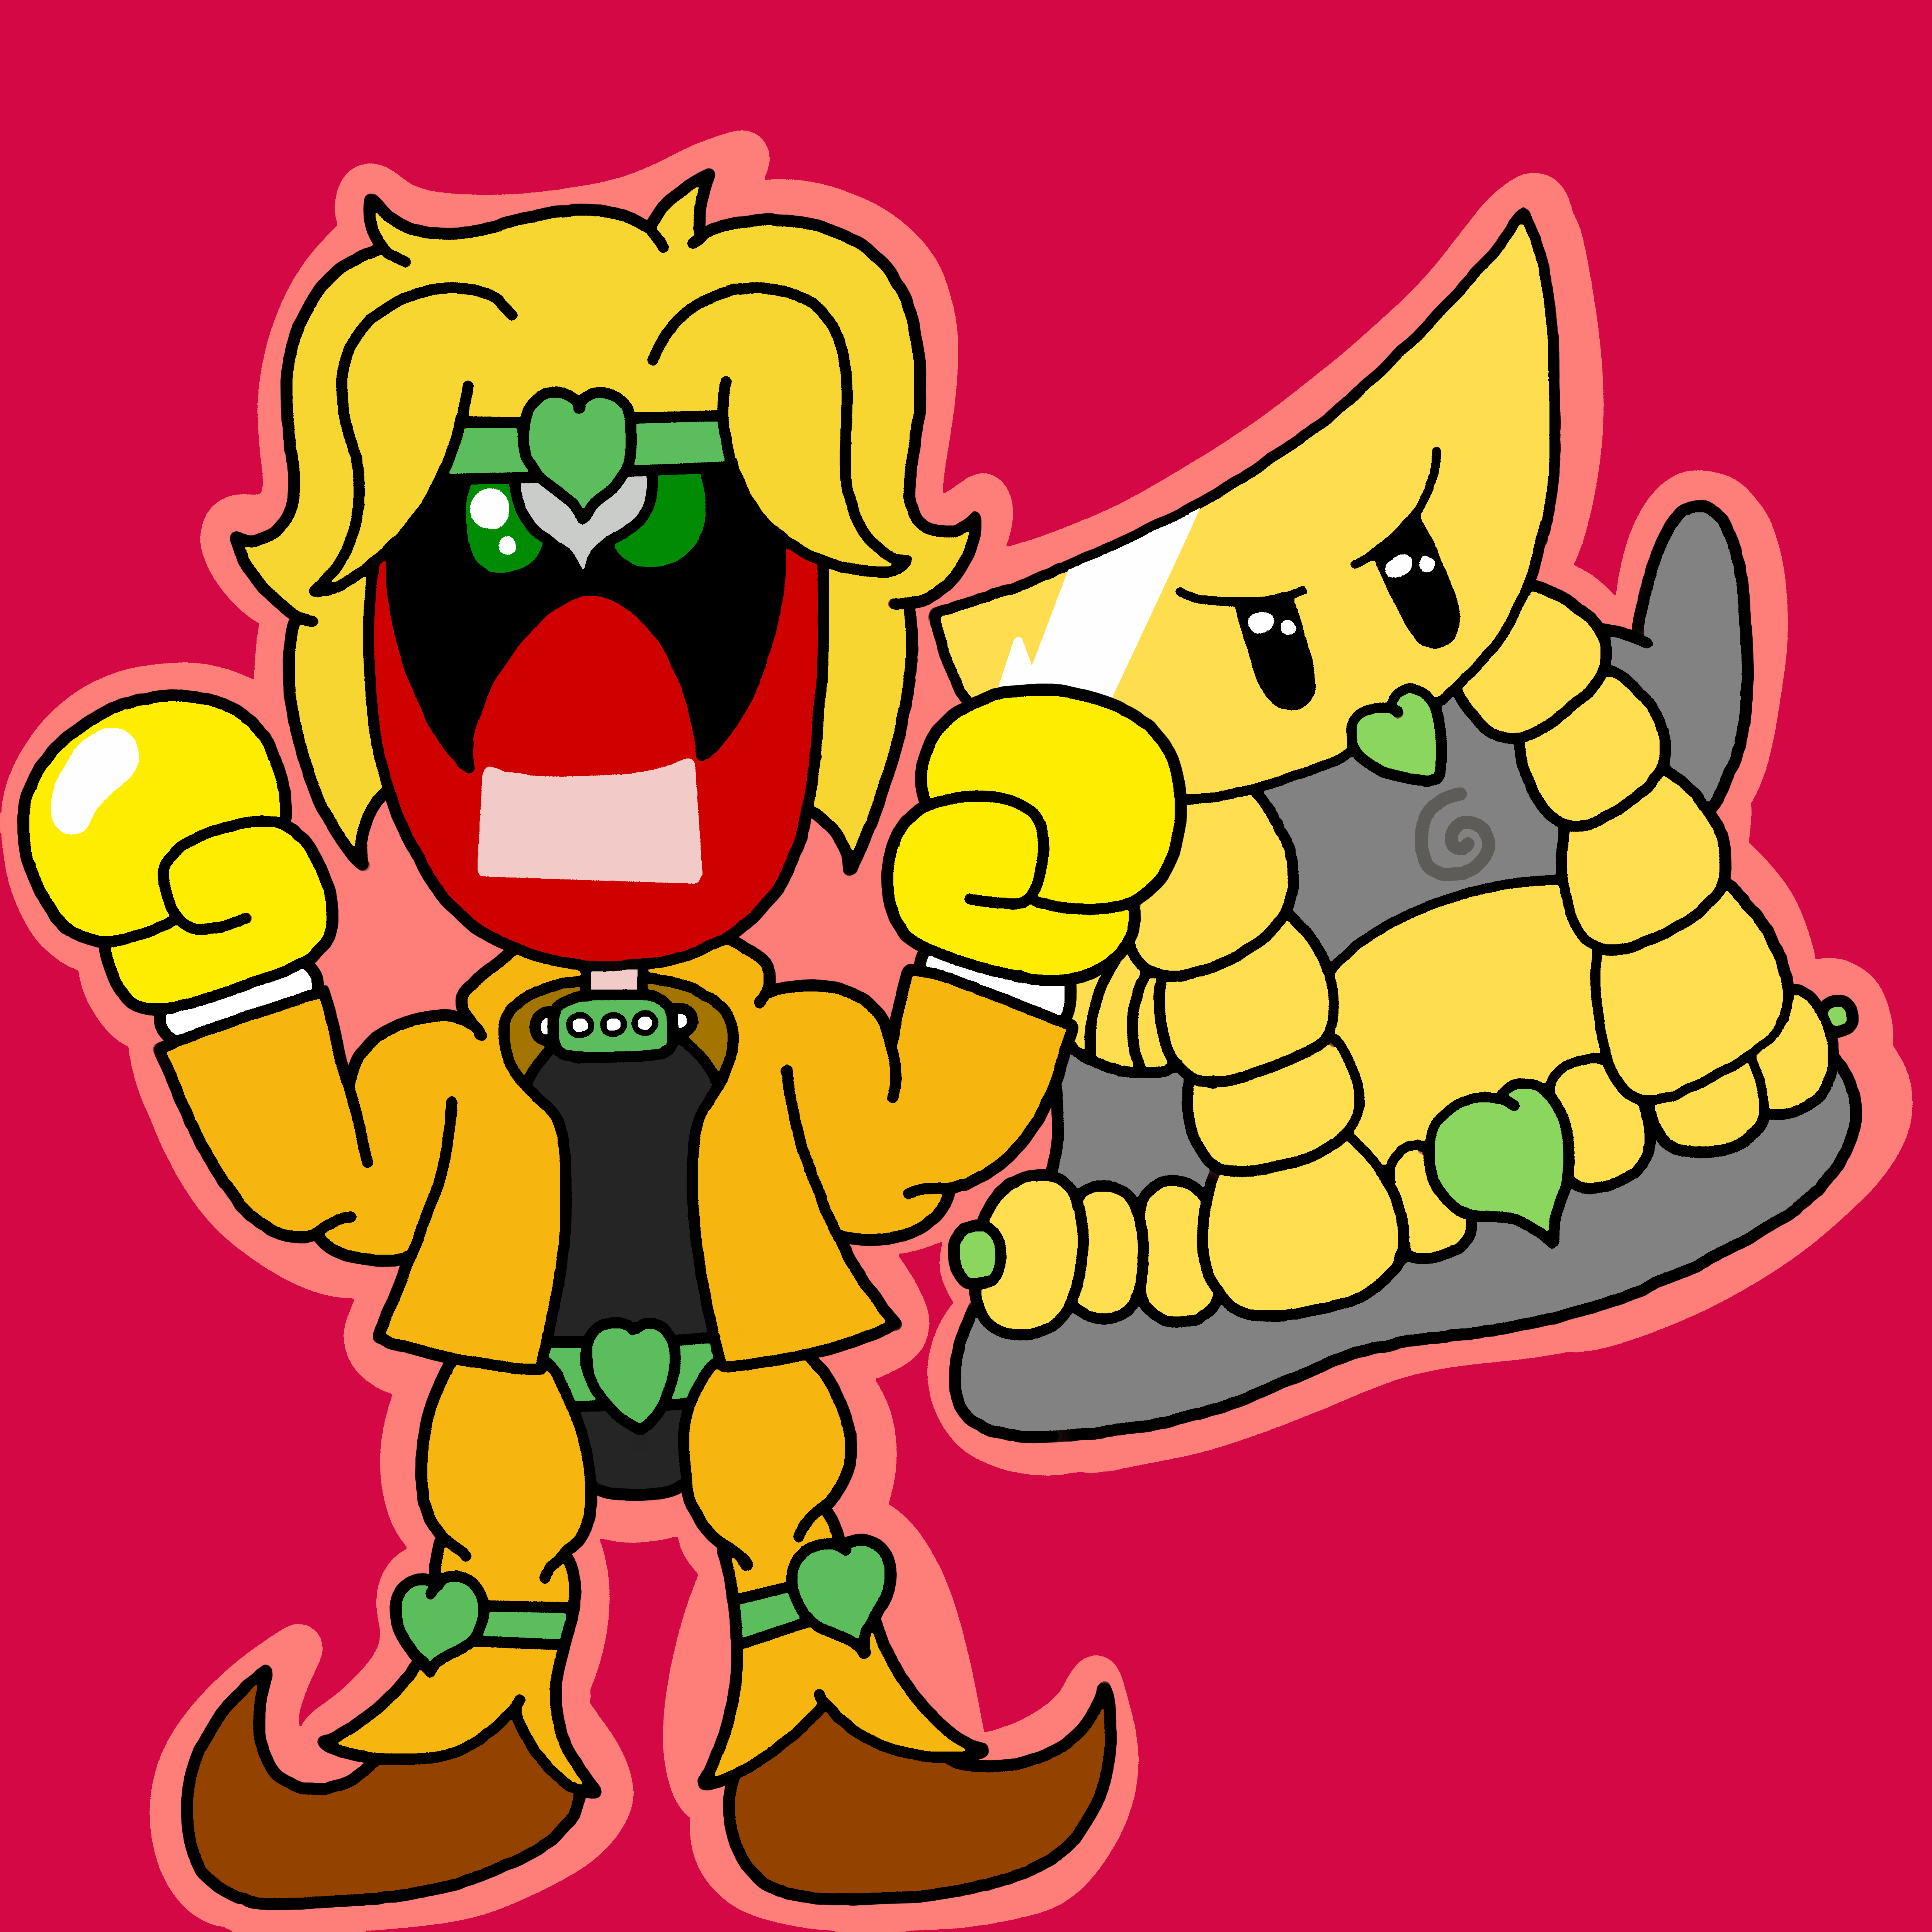 STRONGBAD DIO!!!